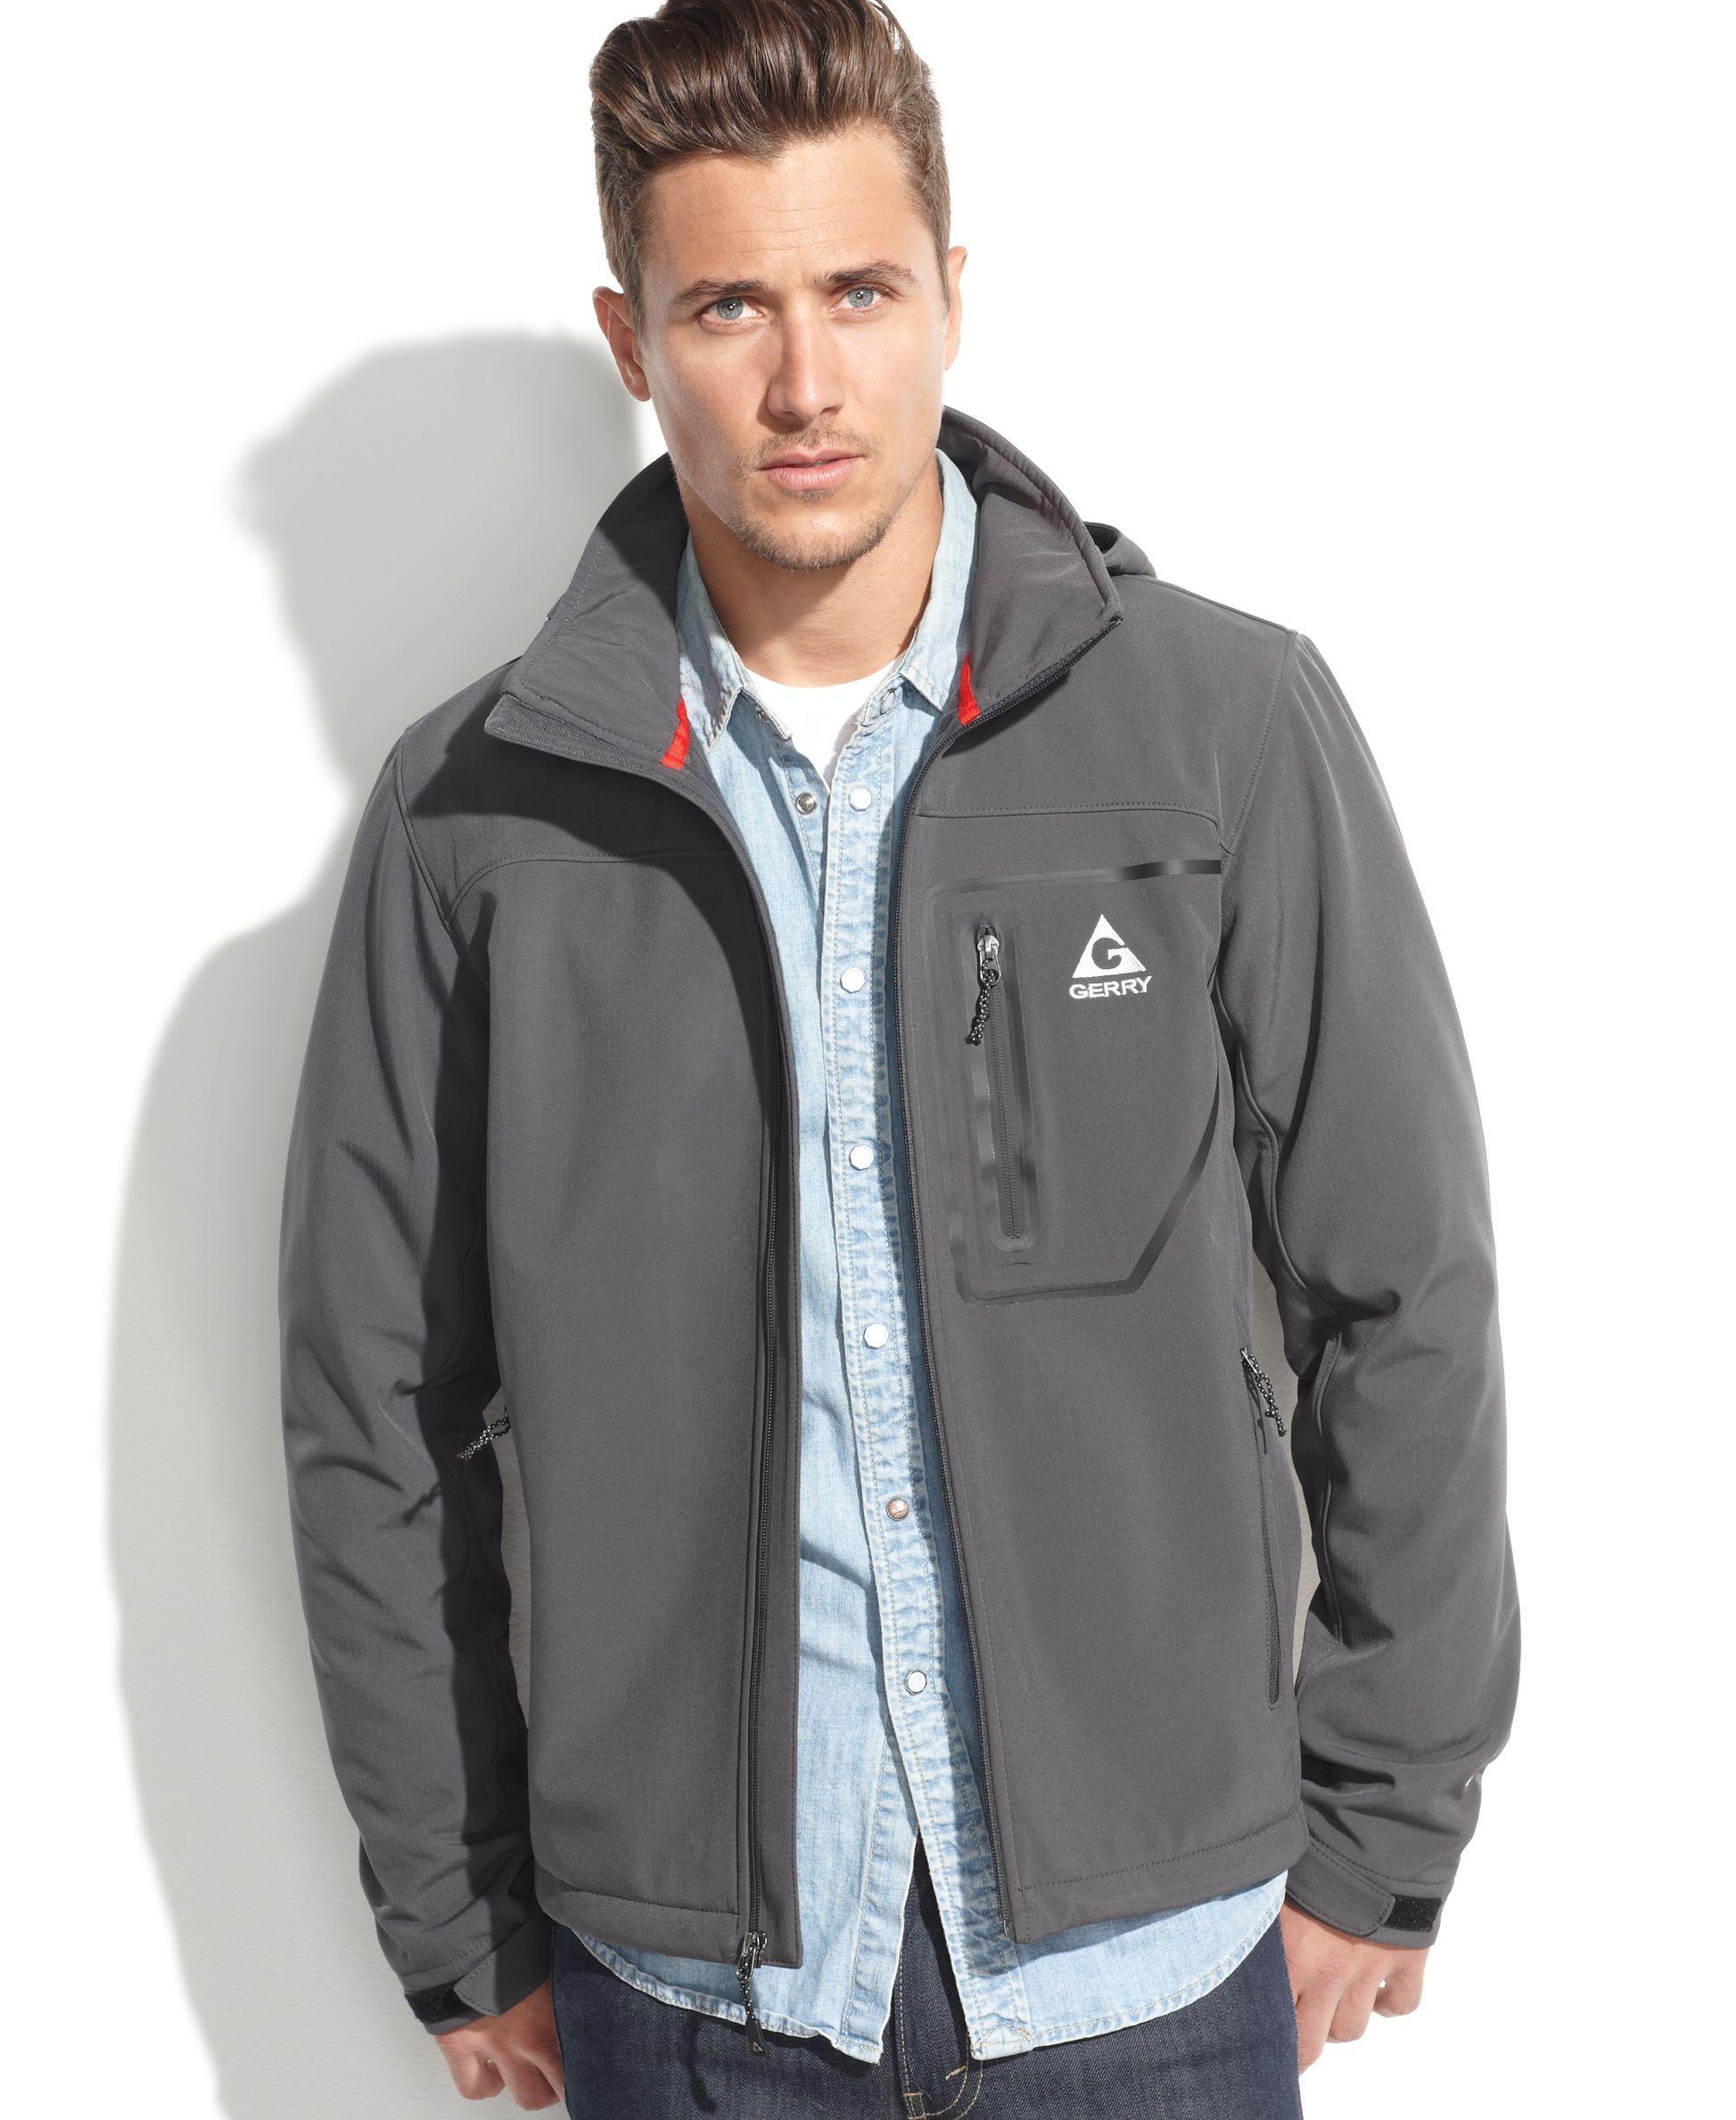 Gerry Mineral Hooded Soft-Shell Performance Jacket